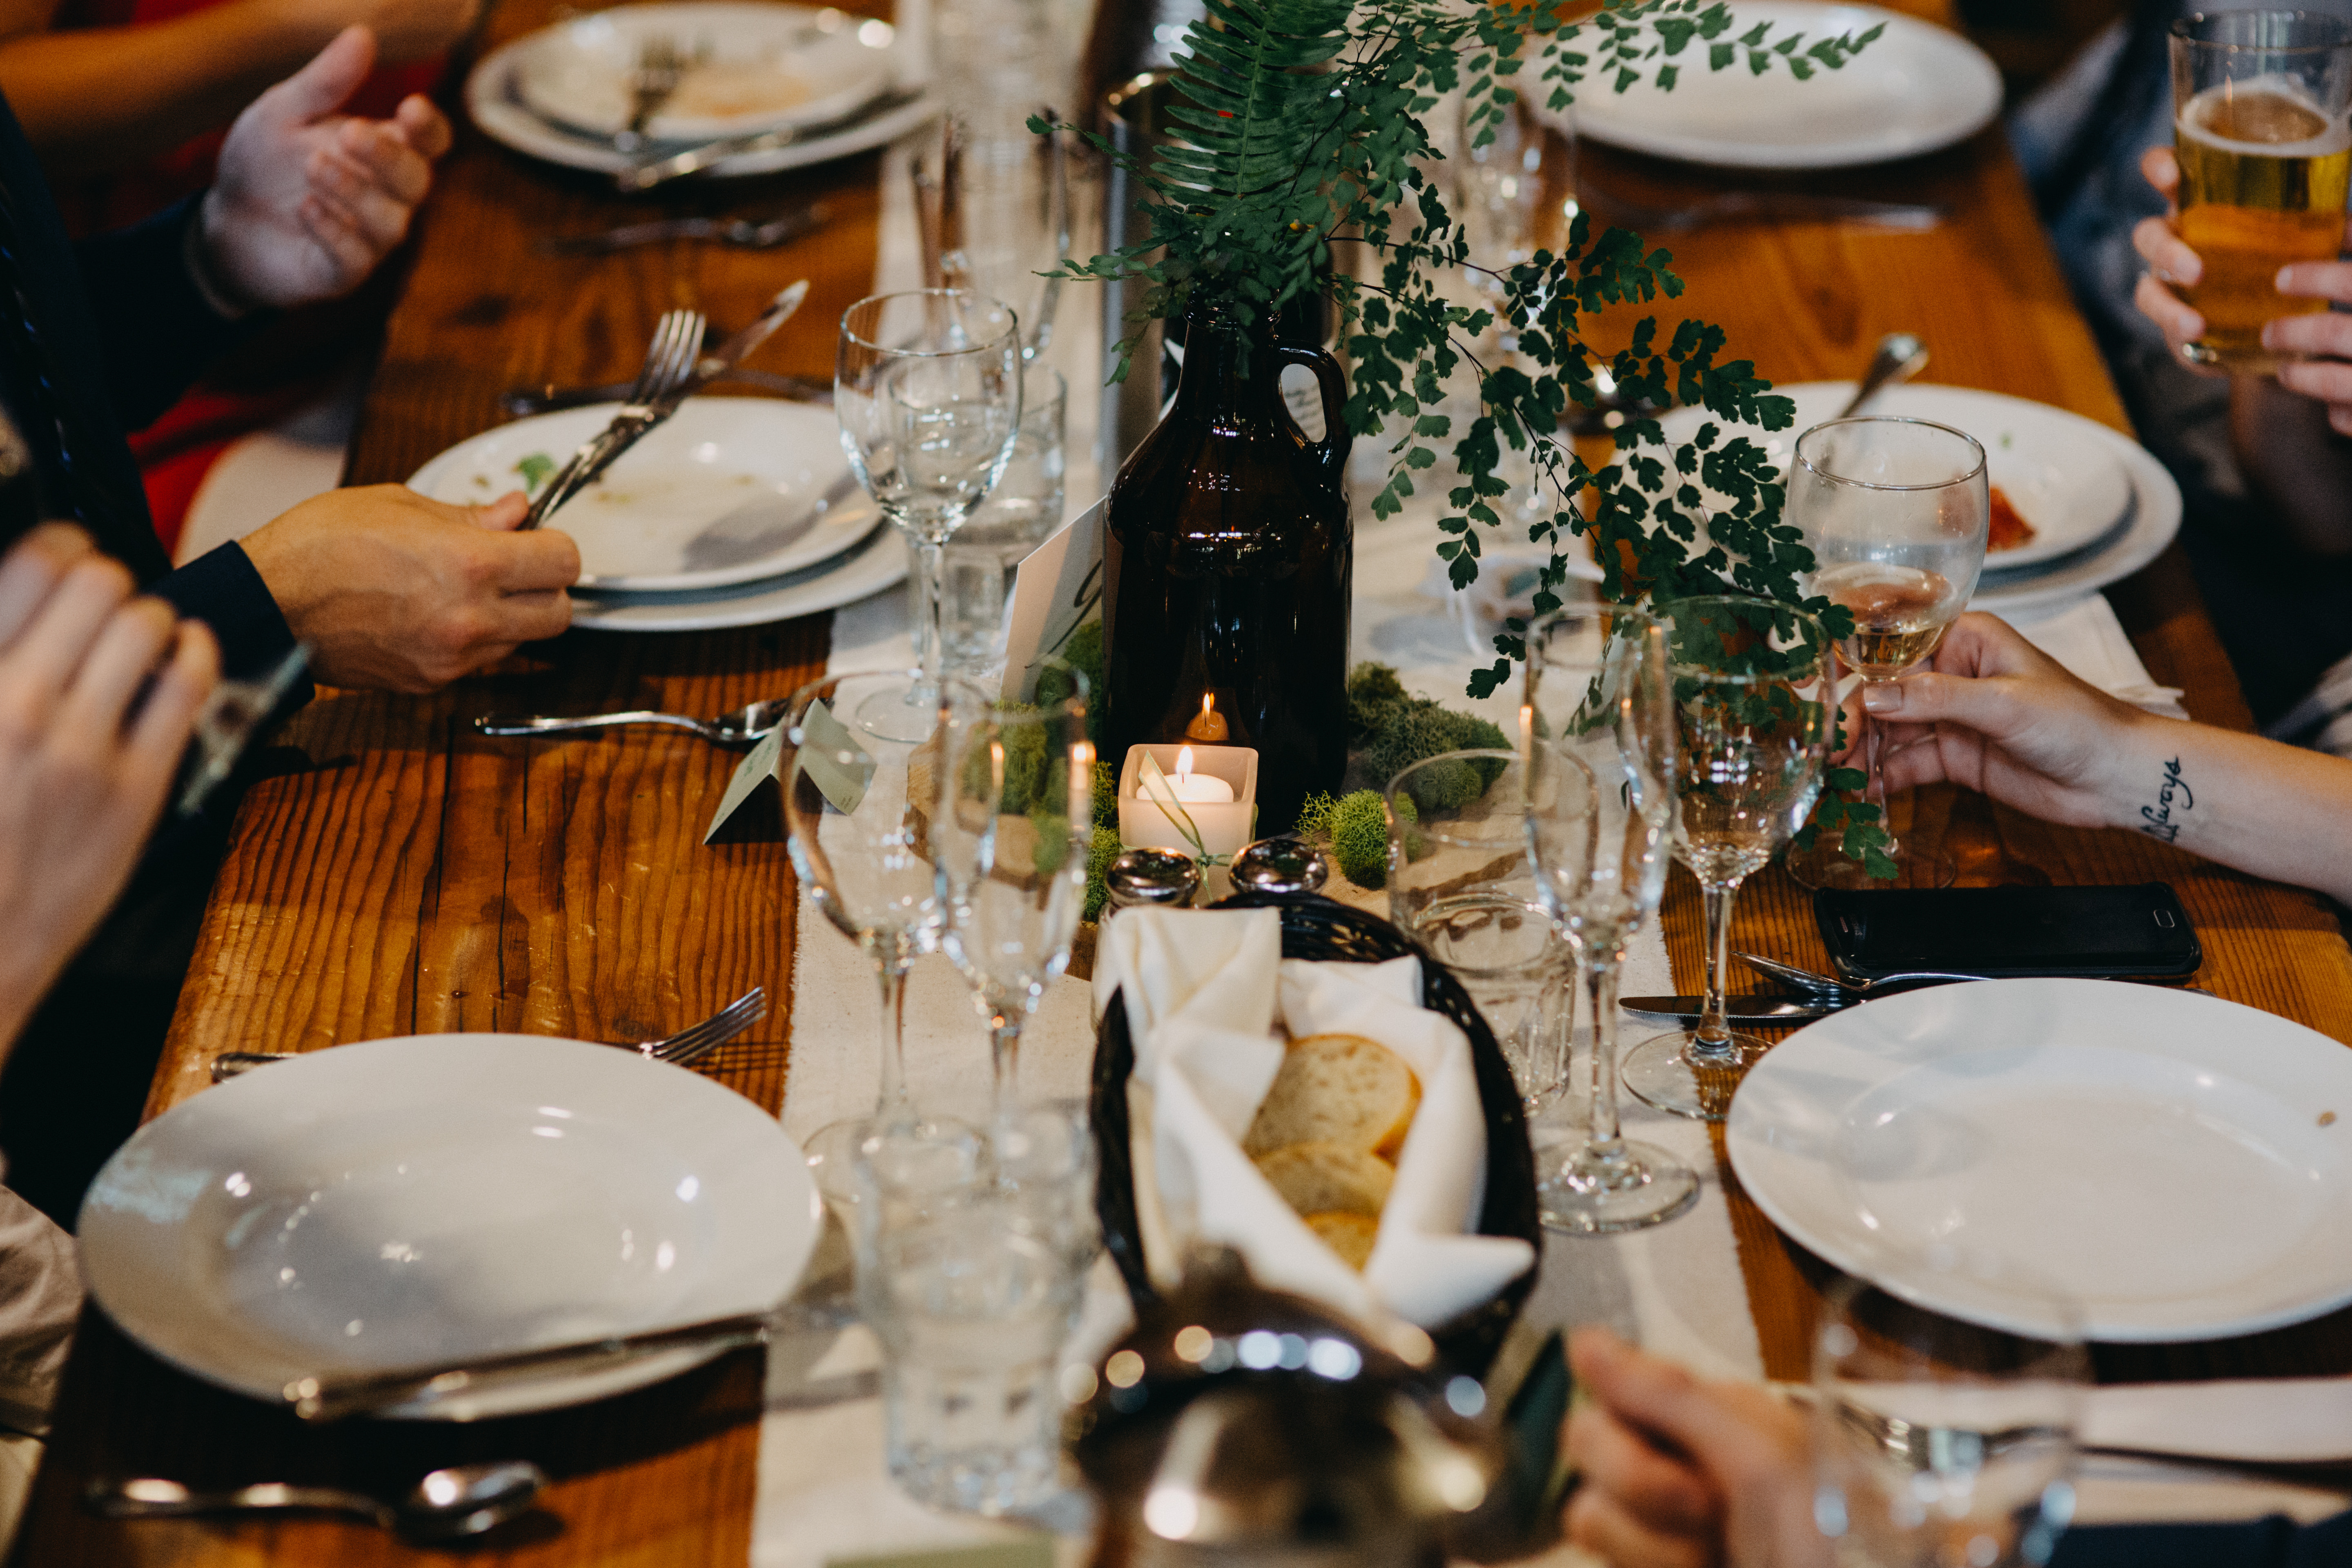 A table at IslandWood set with plates, a candle, a vase with a fern in it, and a basket of bread. Hands are visible on either side of the table, picking up silverware and wine glasses.